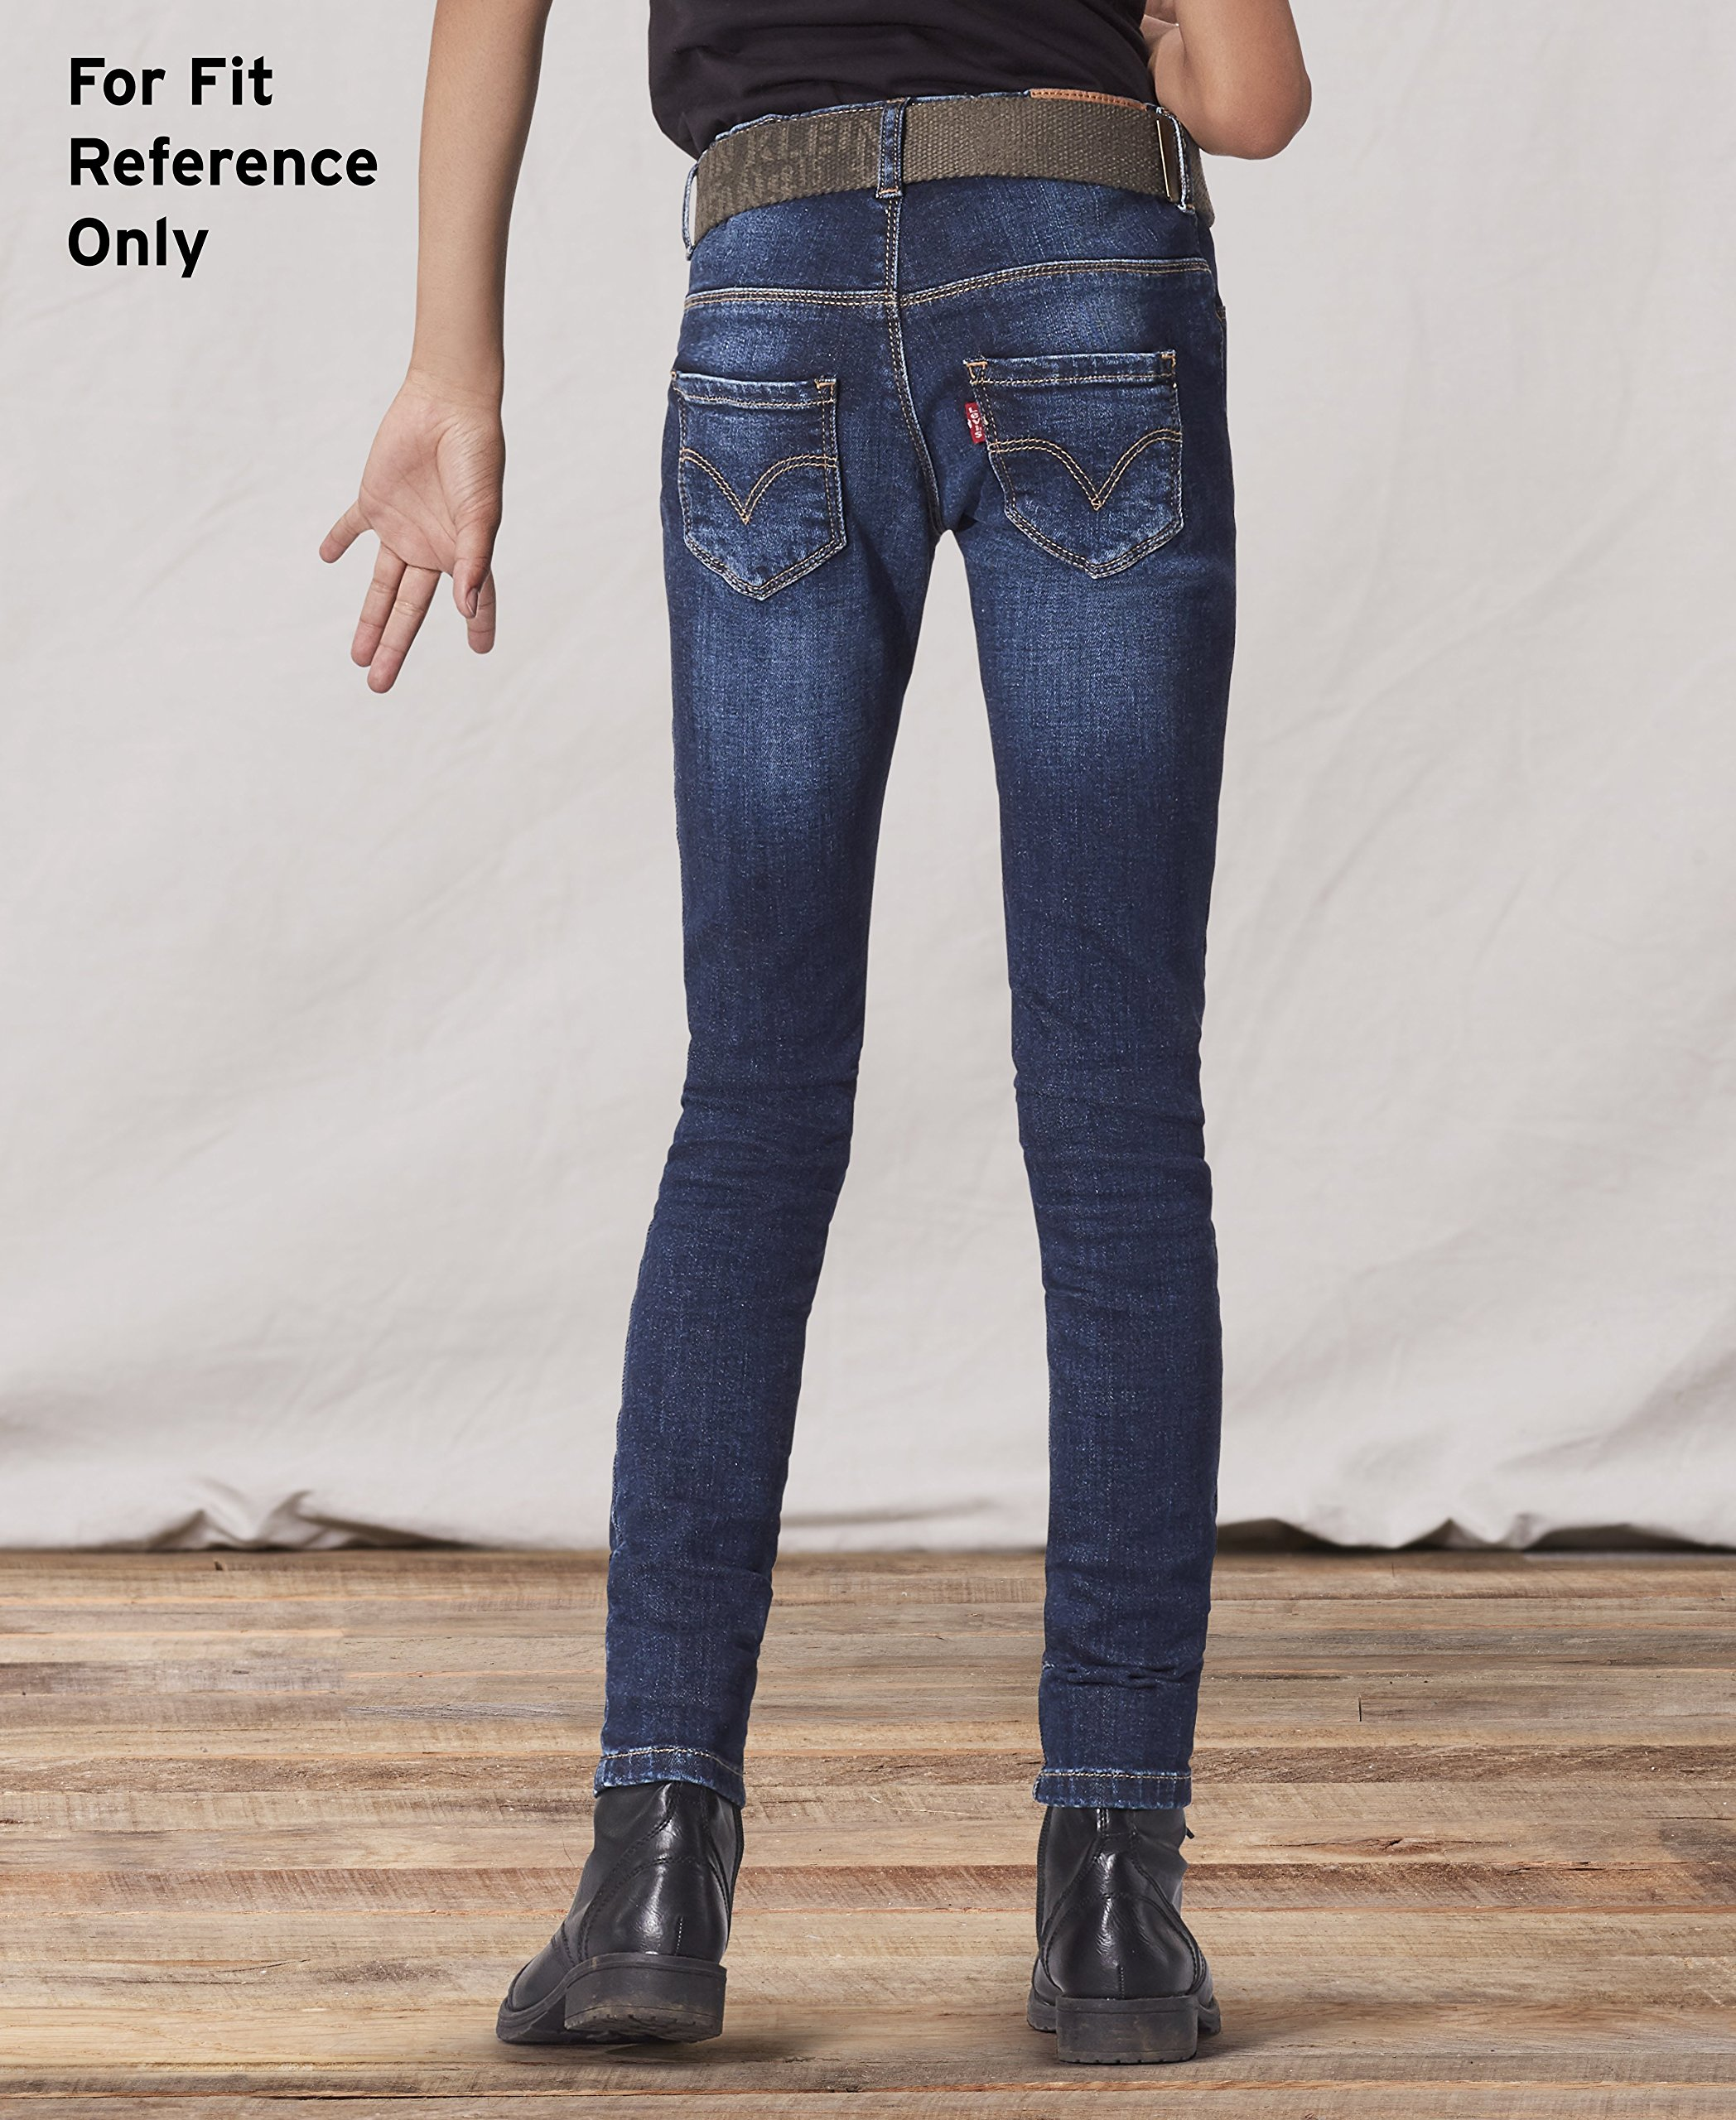 Levi's Girls 7-16 Regs 2702 Denim Legging, Night Out, 16 by Levi's (Image #4)